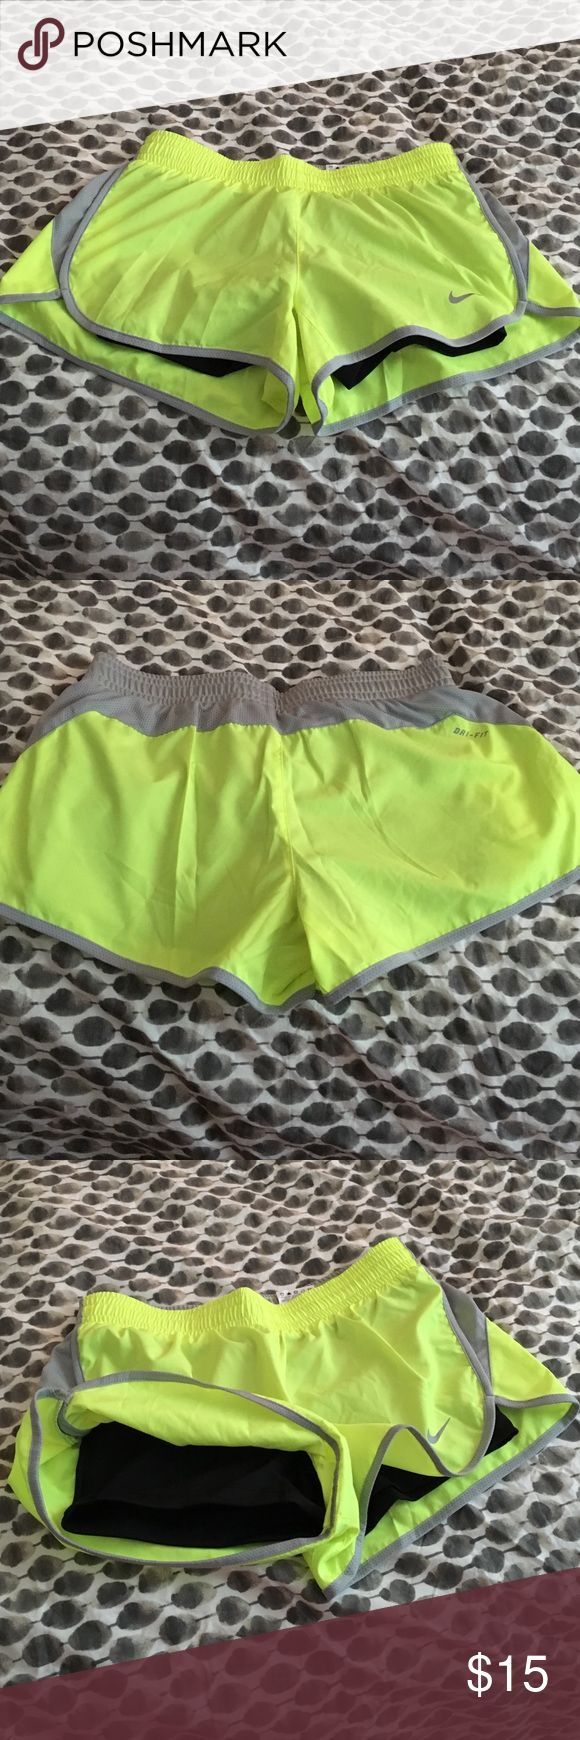 Neon Yellow Nike Shorts Neon yellow and gray Nike women's workout shorts with black spandex shorts built in. Dri fit size small. Worn once. Nike Shorts